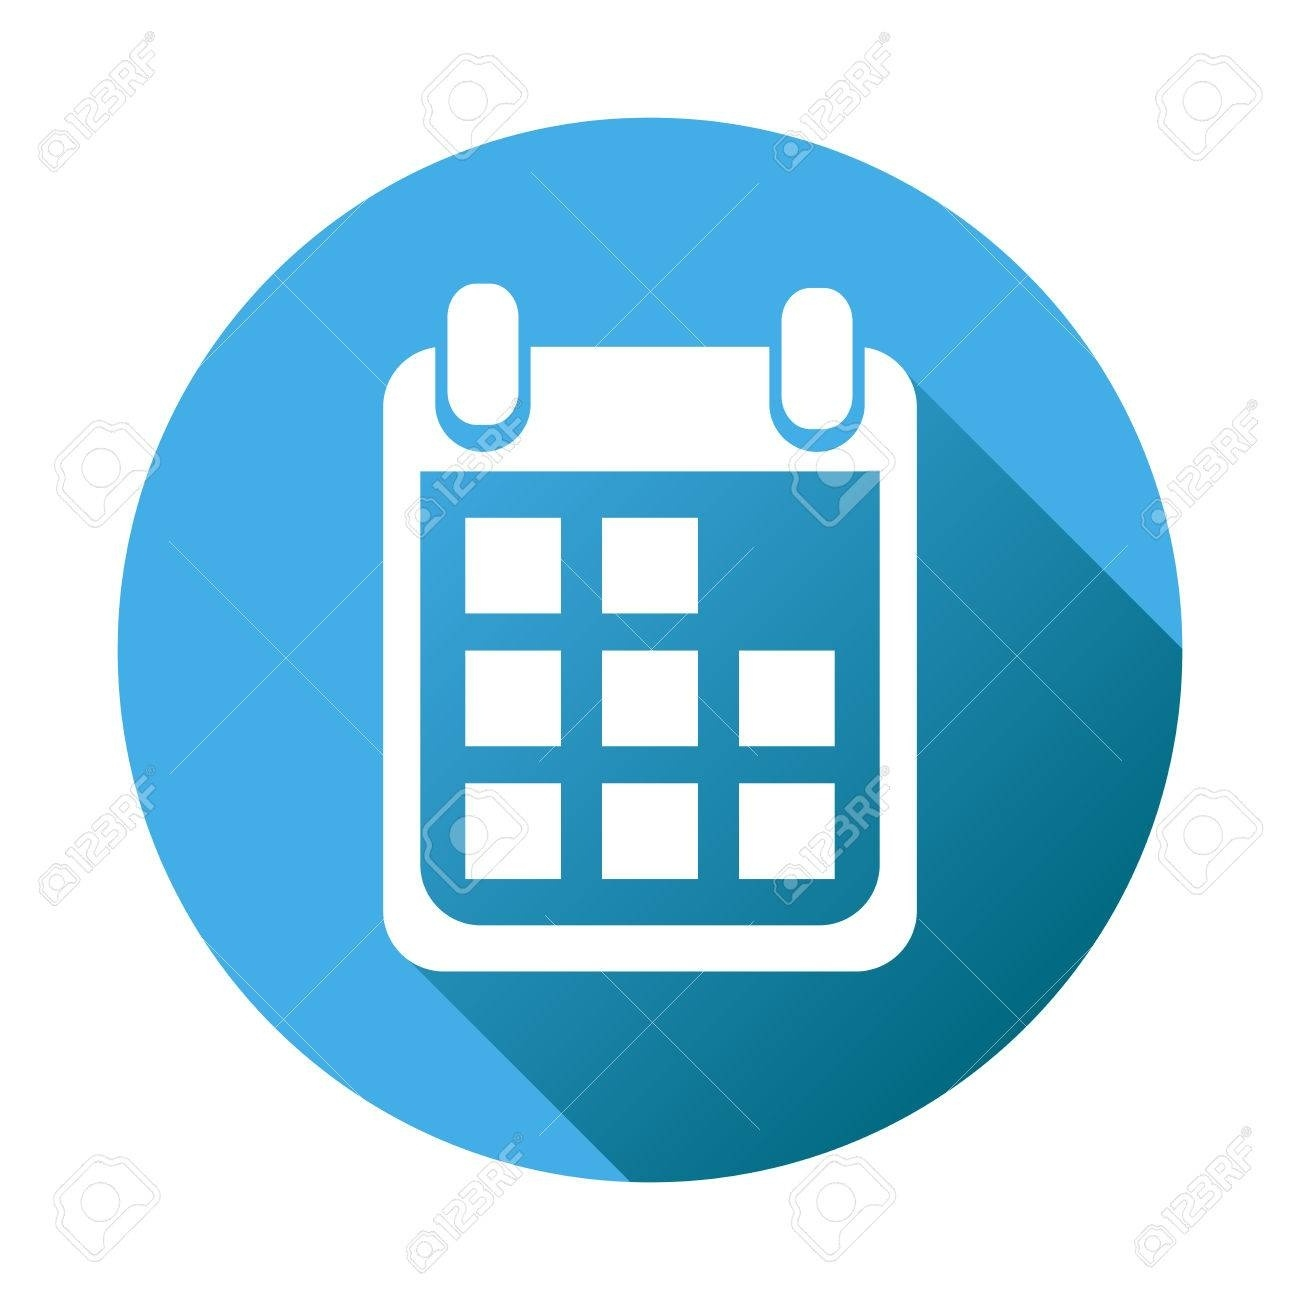 Calendar Icon On Blue Round Background, Vector Illustration_Calendar Icon For Website